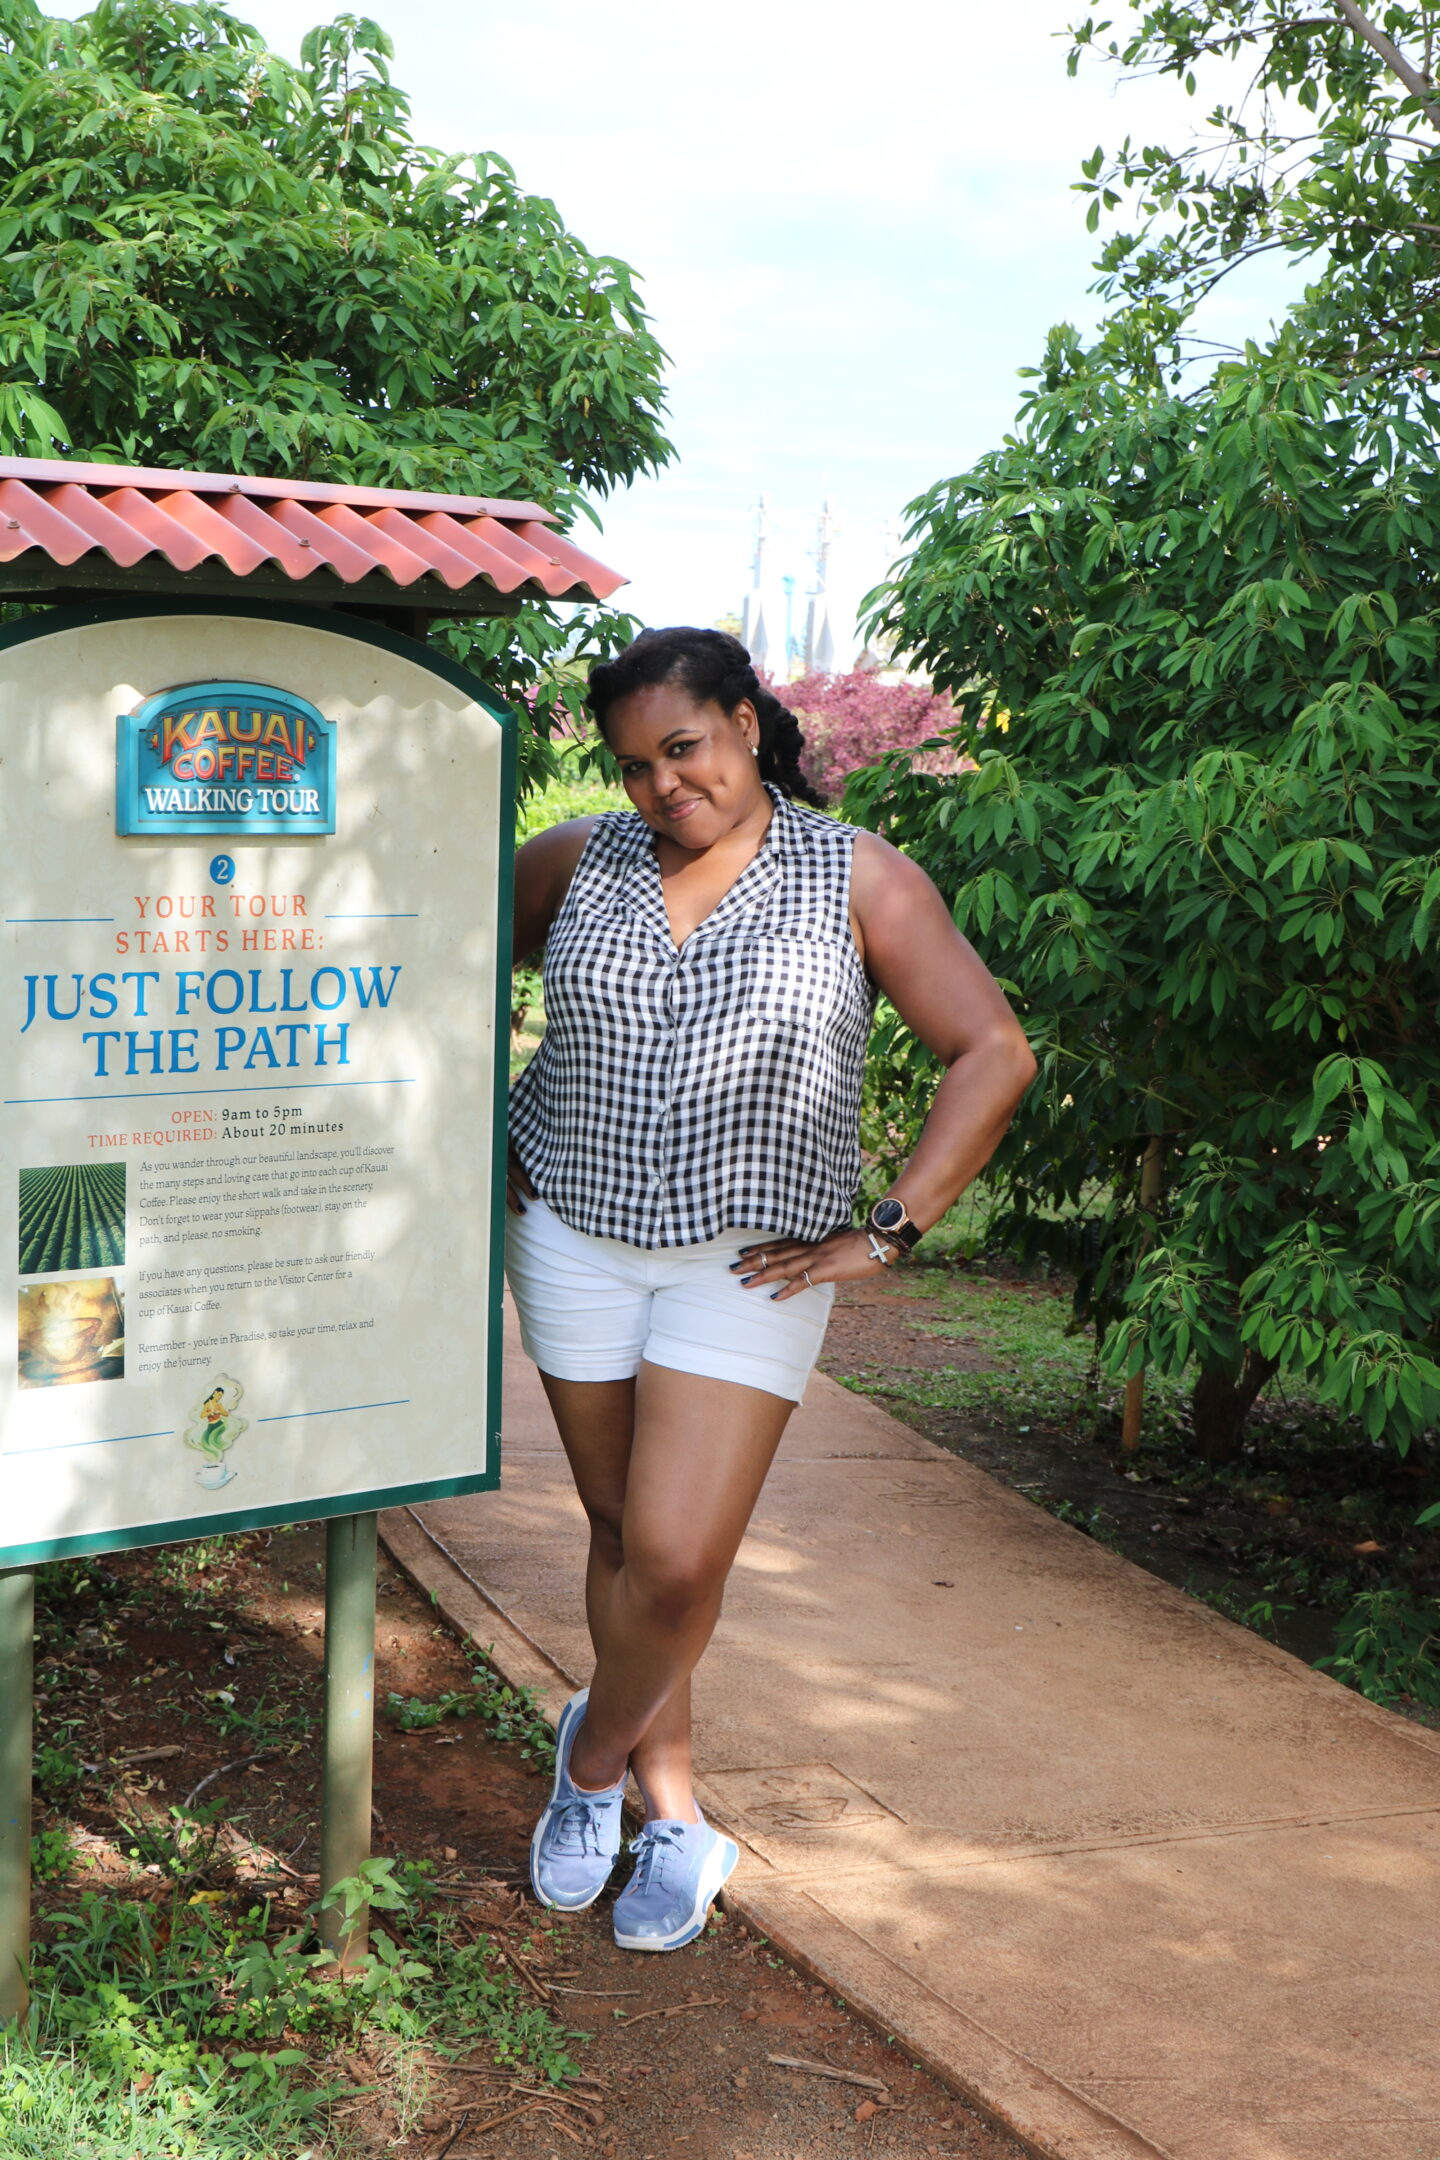 Stroll With Me in Hawaii: My Kauai Coffee Walking Tour